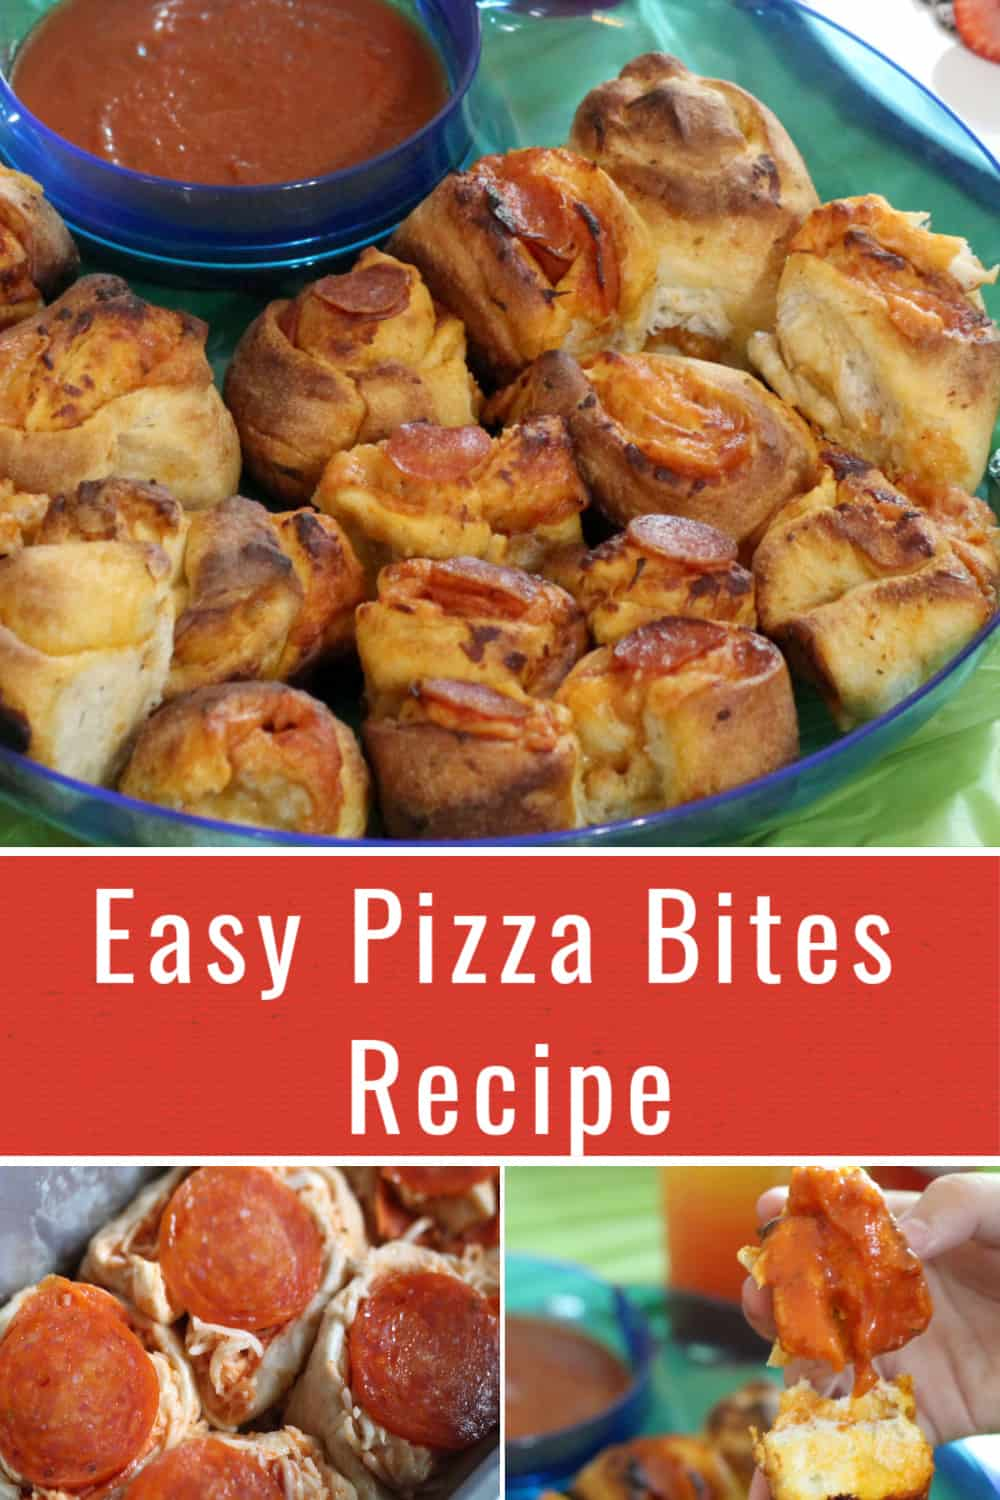 Easy Pizza Bites Recipe perfect for an Artemis Fowl party or any family entertaining event.